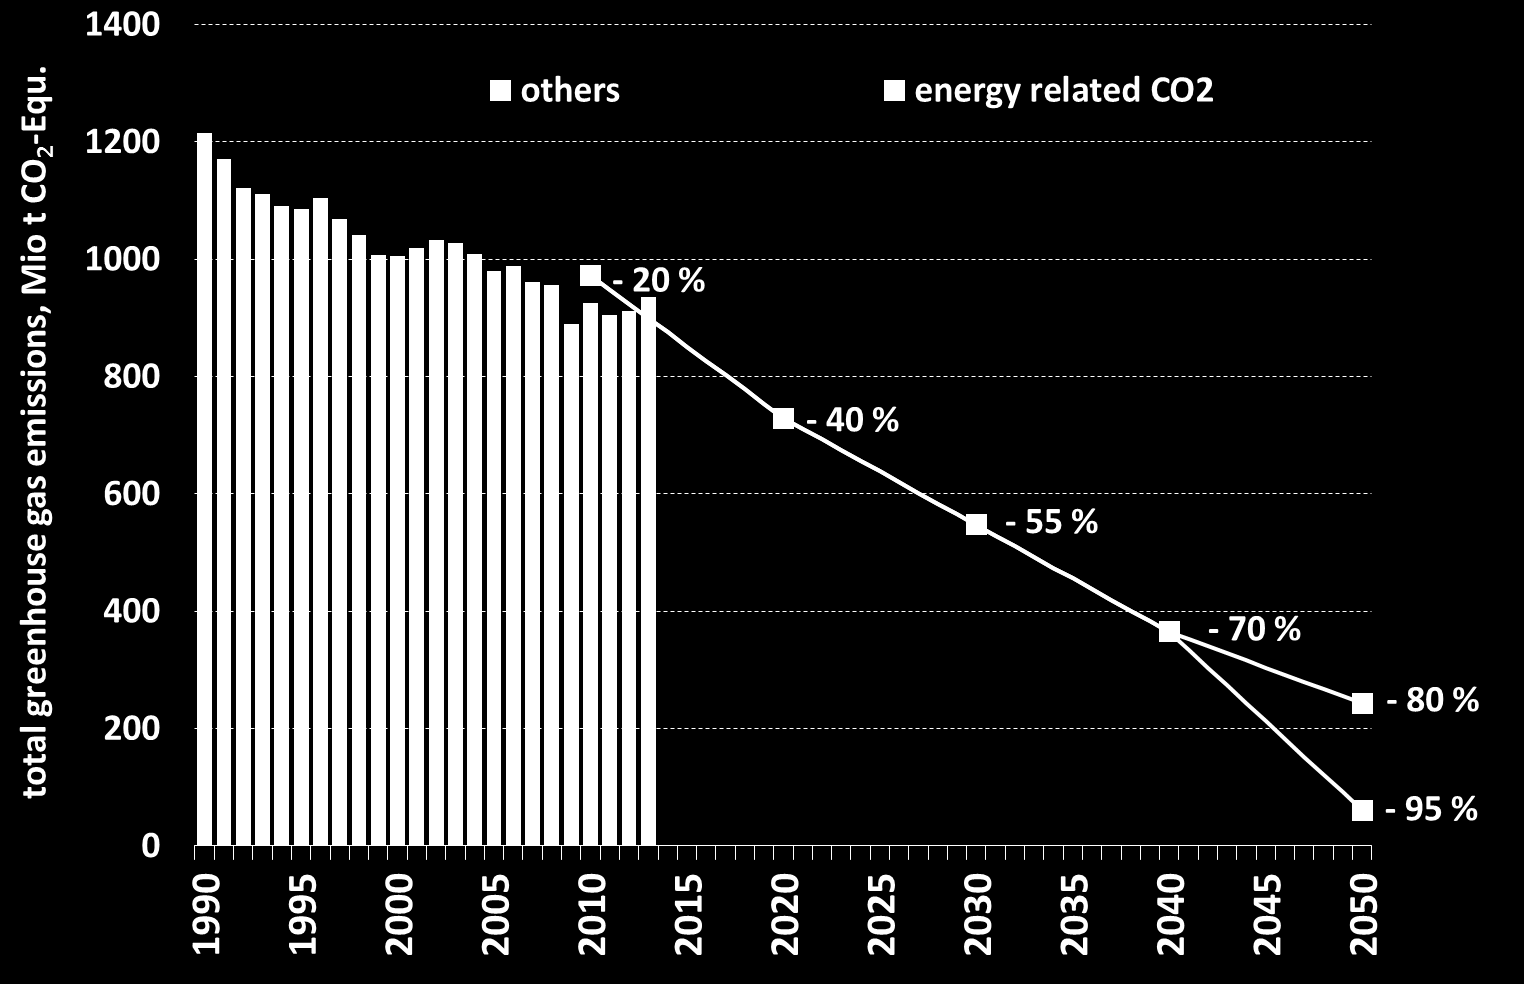 Development of German GHG emissions